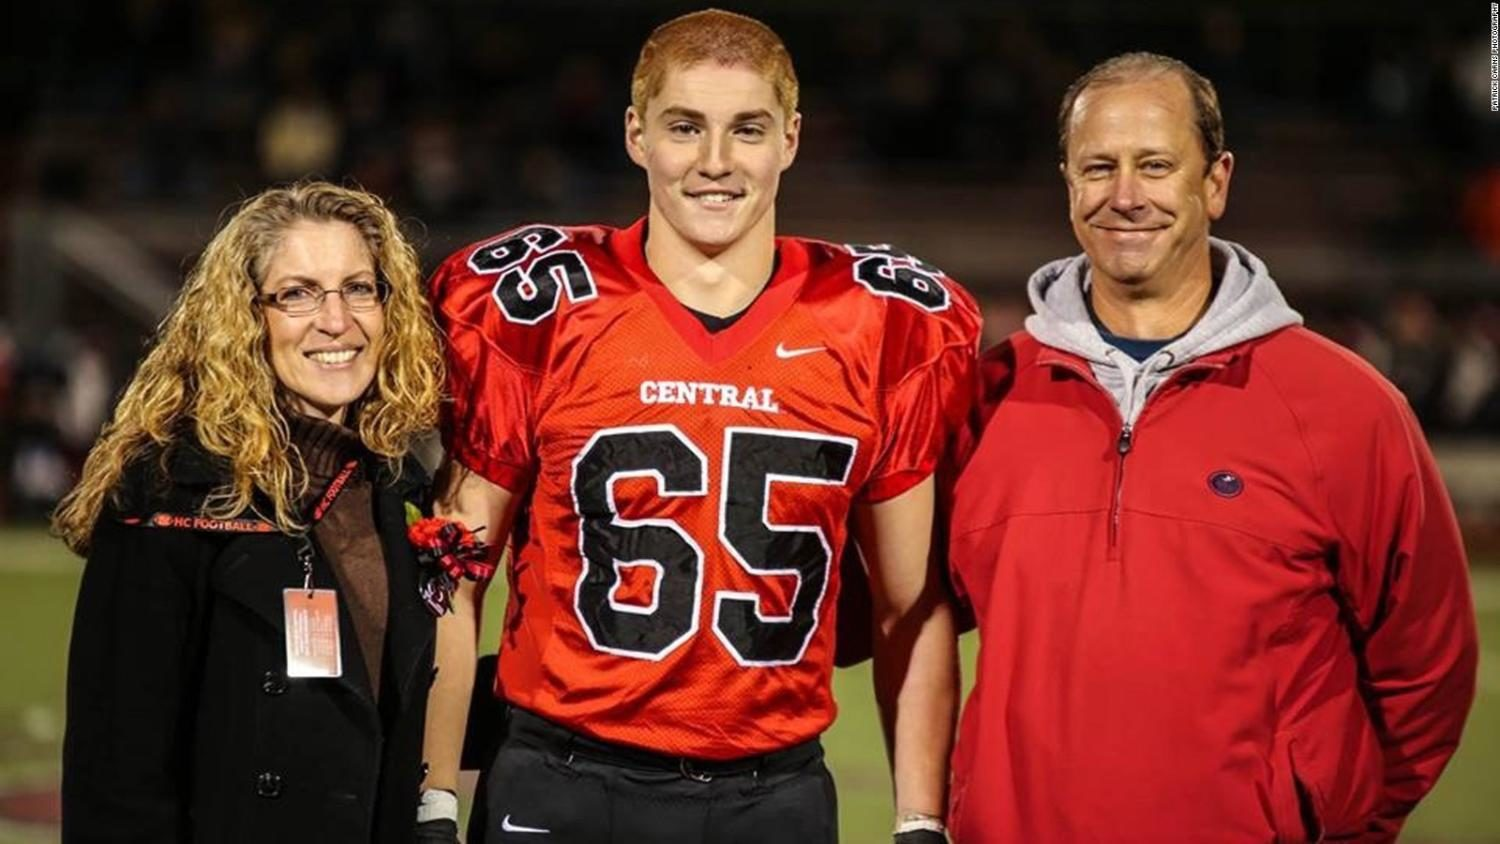 Penn State Hazing Led to Student Death